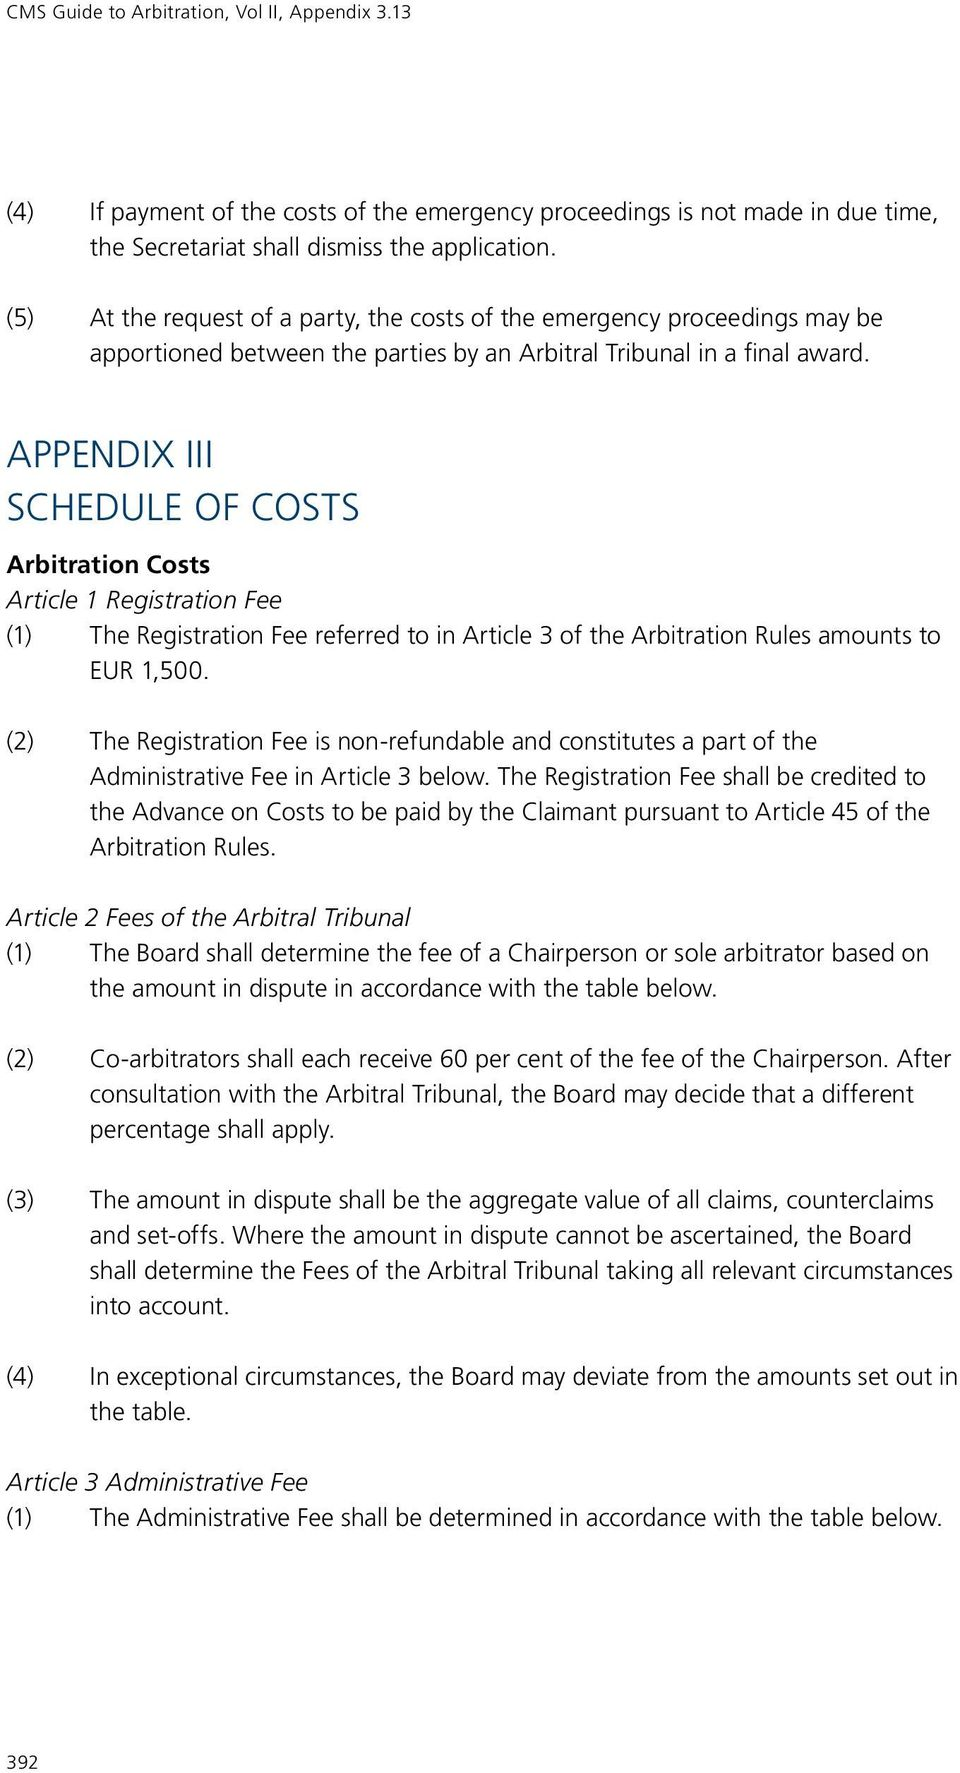 APPENDIX III SCHEDULE OF COSTS Arbitration Costs Article 1 Registration Fee (1) The Registration Fee referred to in Article 3 of the Arbitration Rules amounts to EUR 1,500.